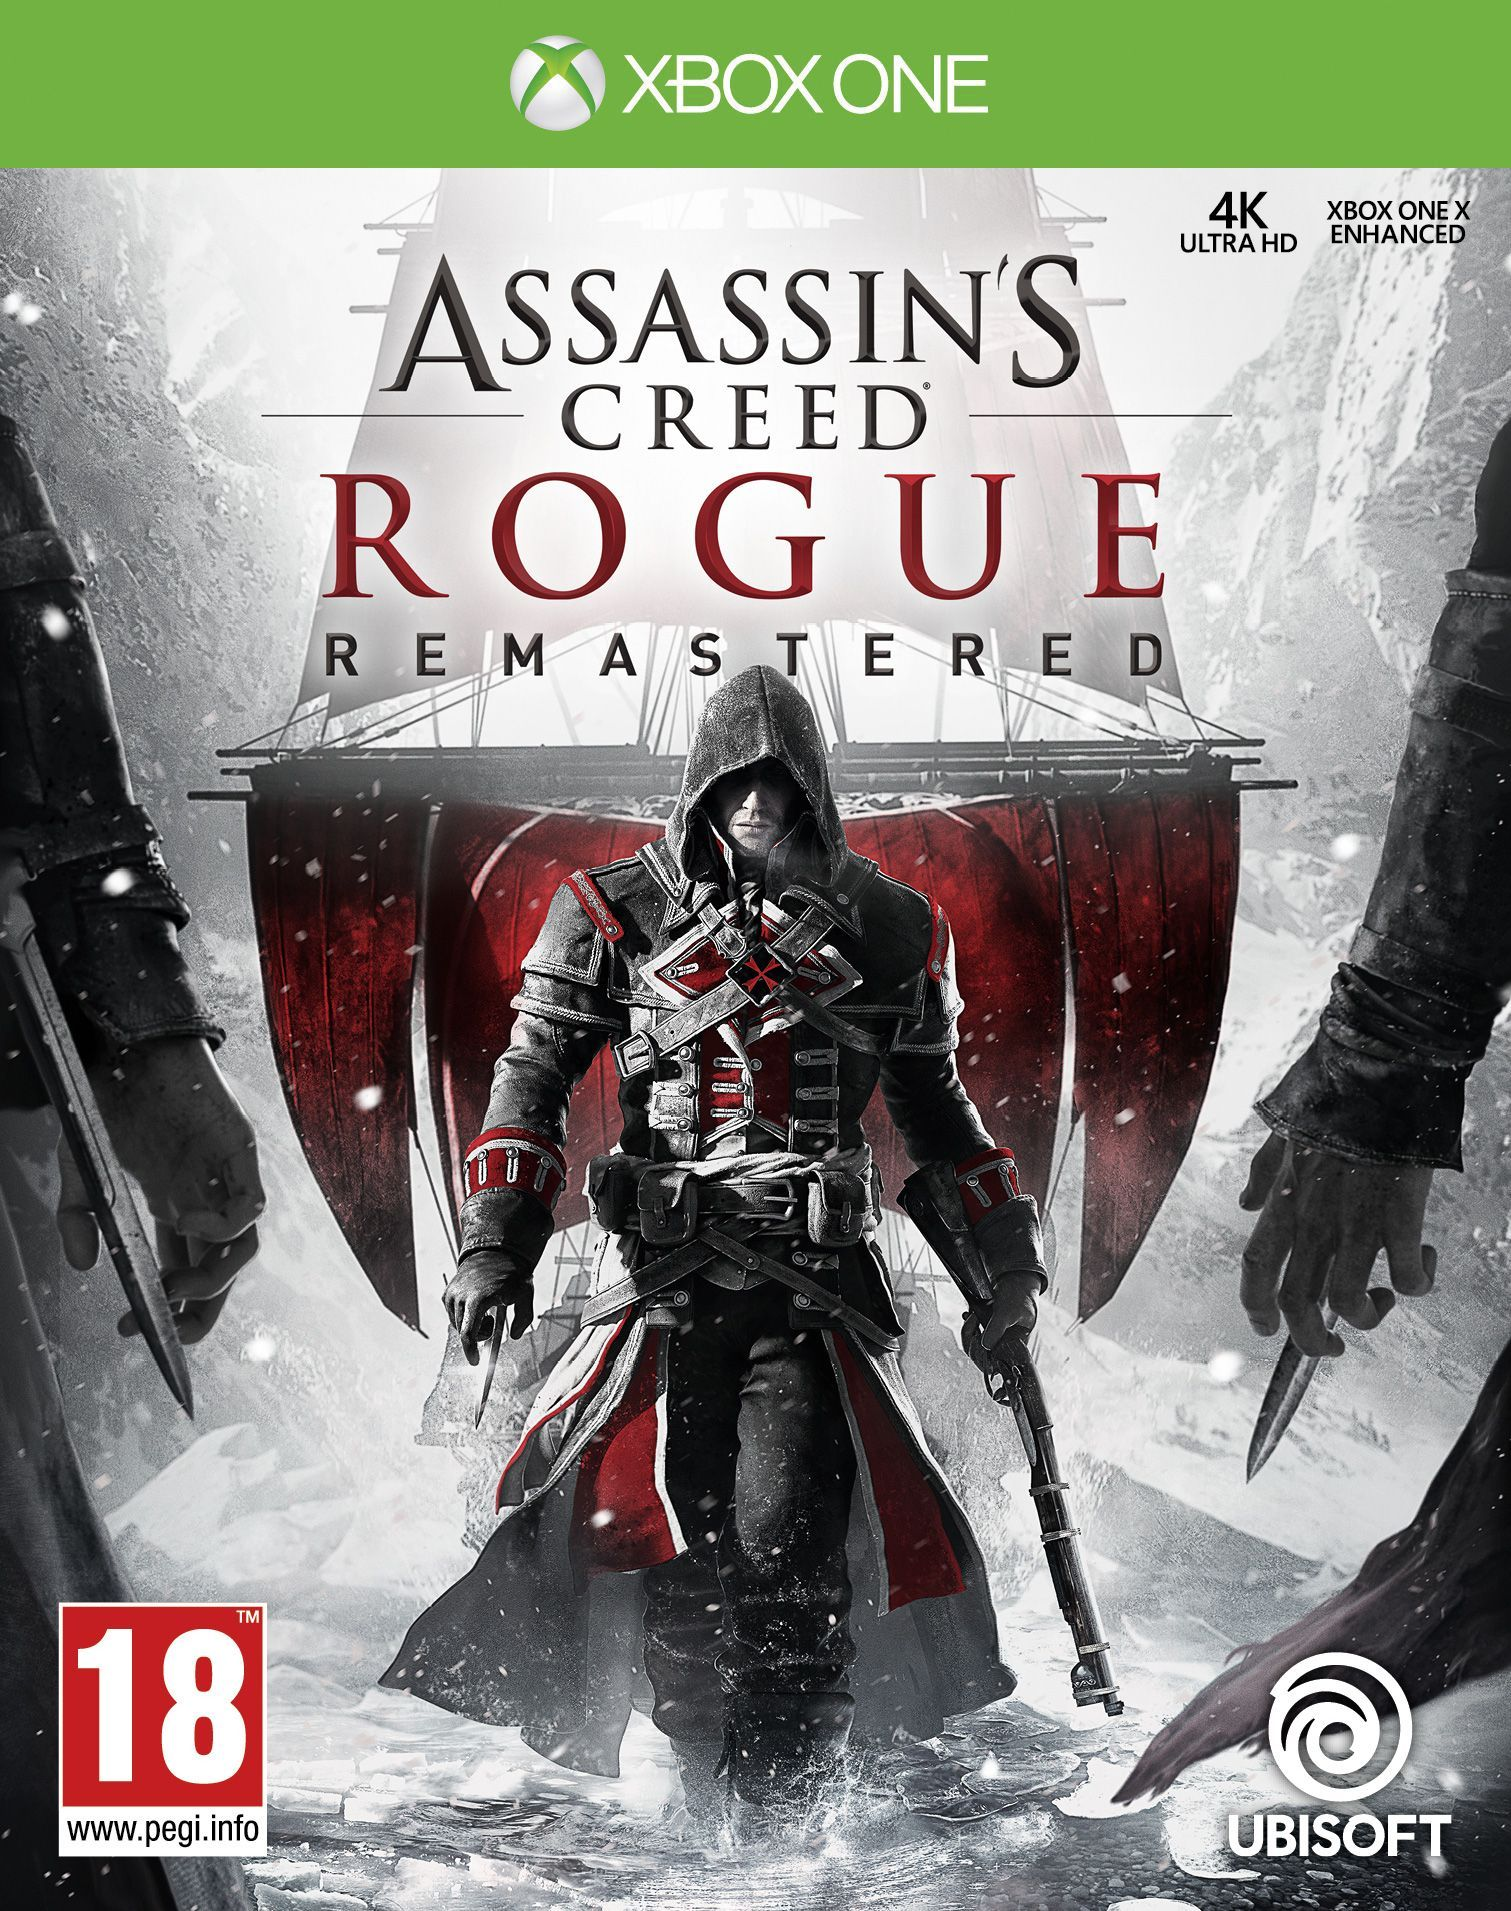 Assassin's Creed Rogue Remastered (Xbox One) - 1